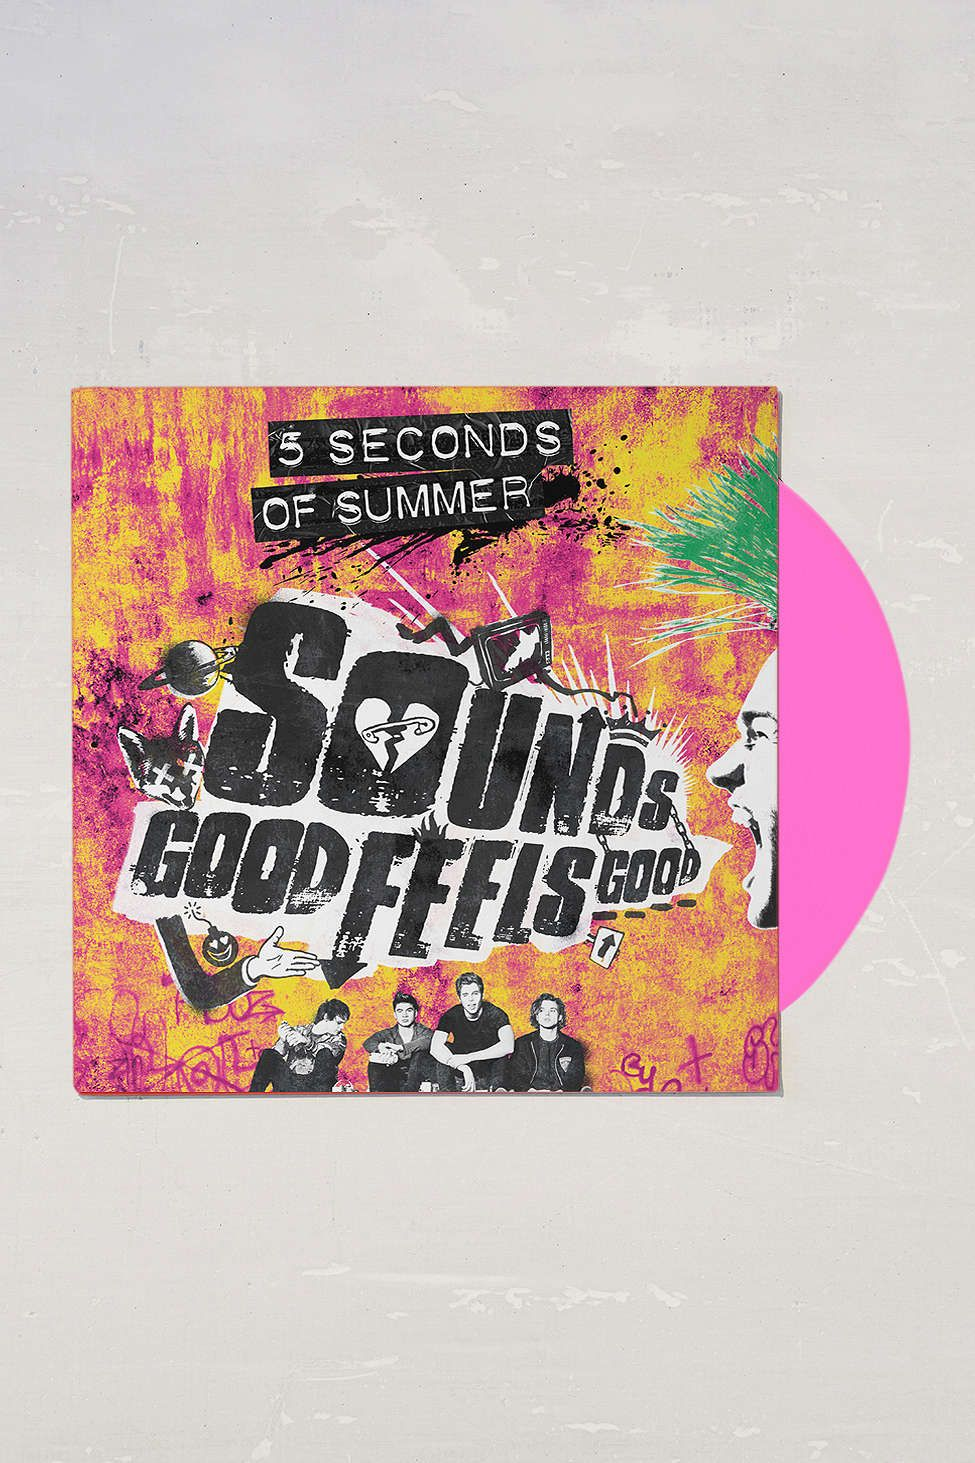 5sos poster design - 5 Seconds Of Summer Sounds Good Feels Good Uo Exclusive Lp